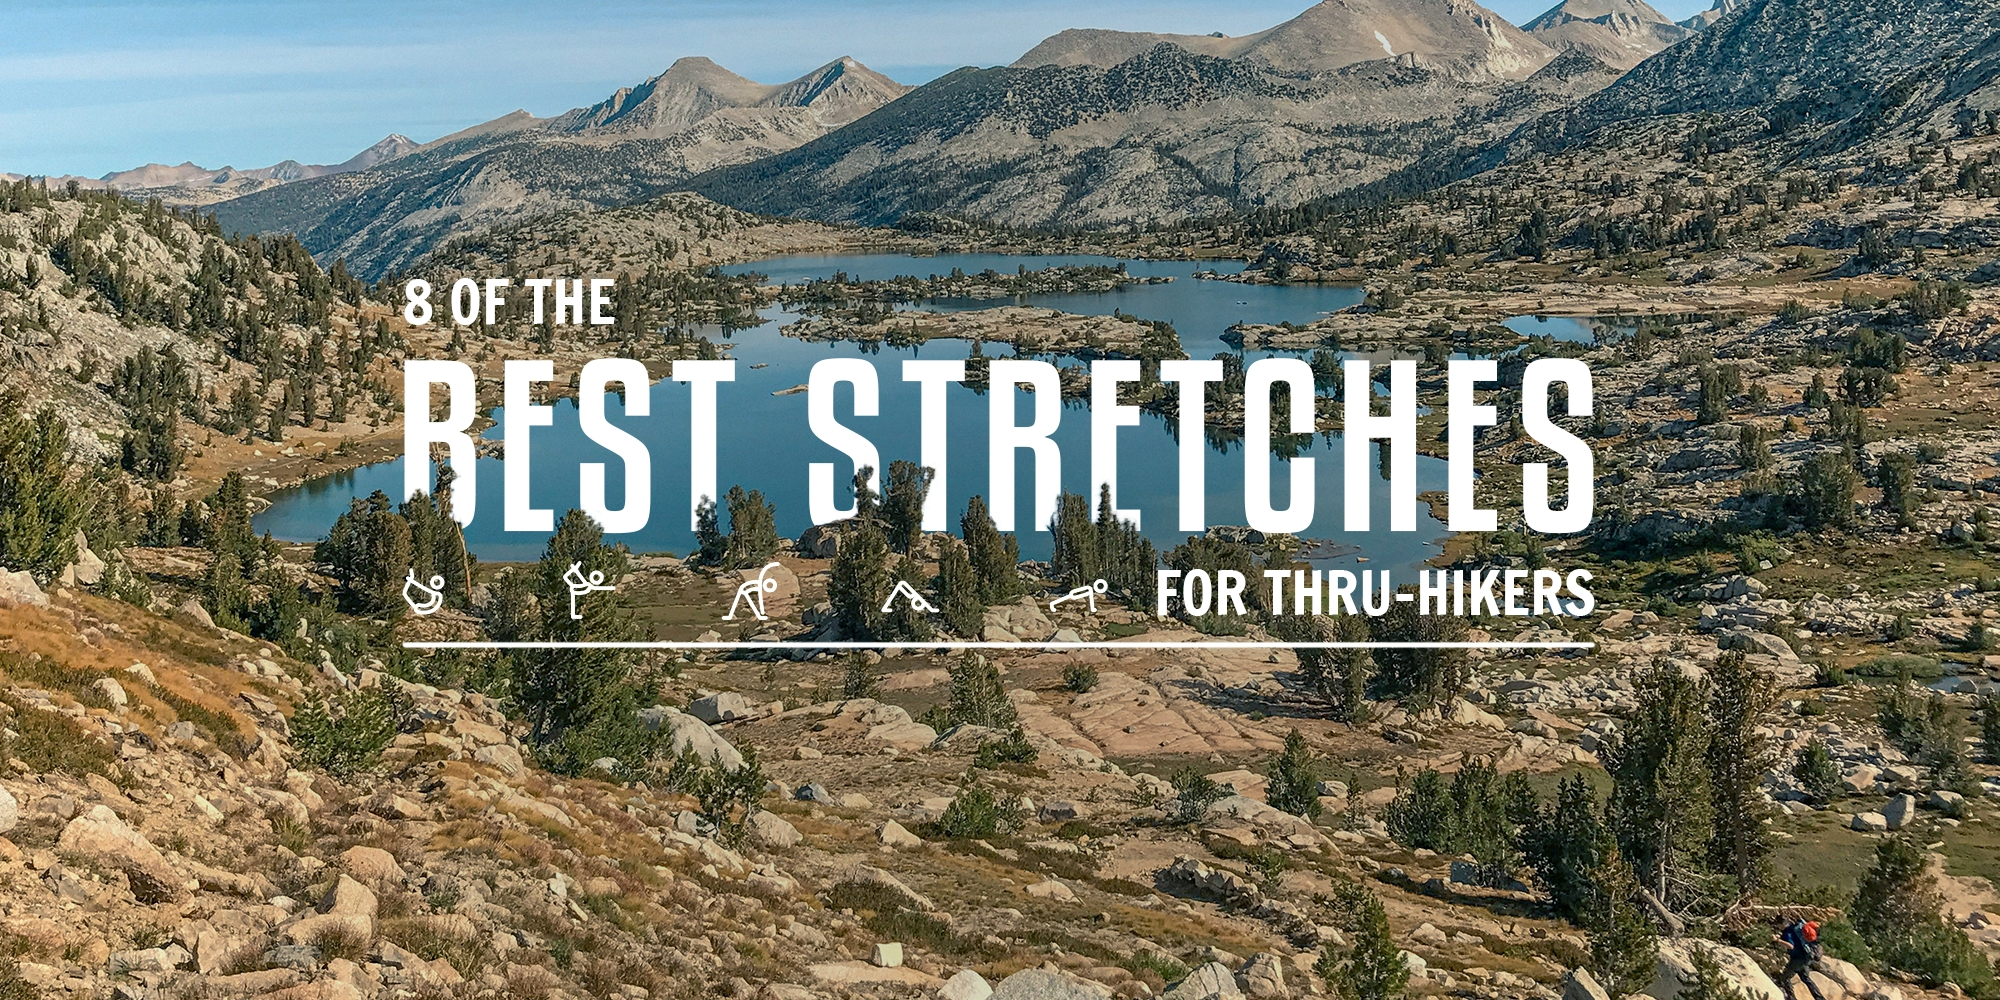 8 of the Best Stretches for Thru-Hikers - The Trek